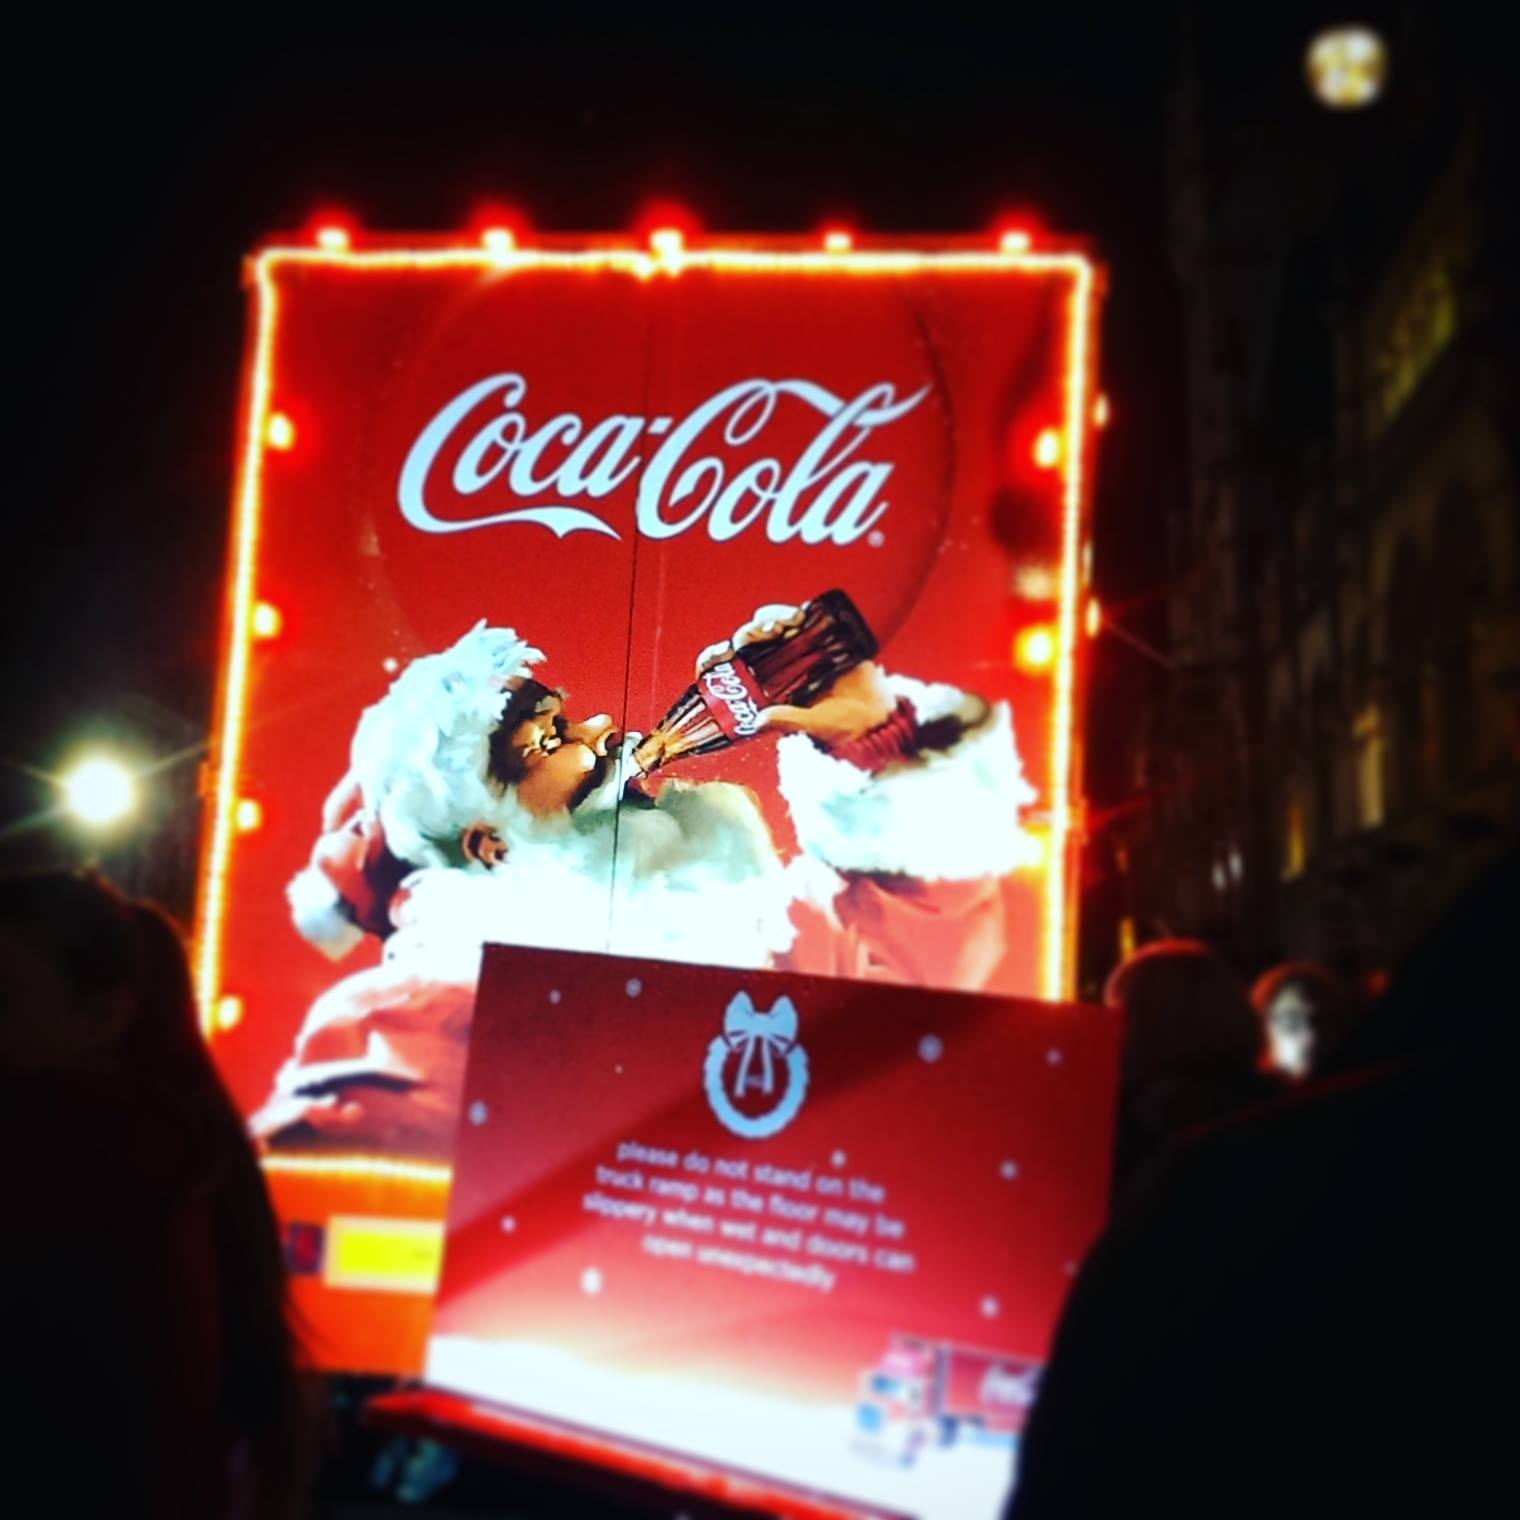 lebellelavie It's official, the holidays are coming with Coca-Cola!